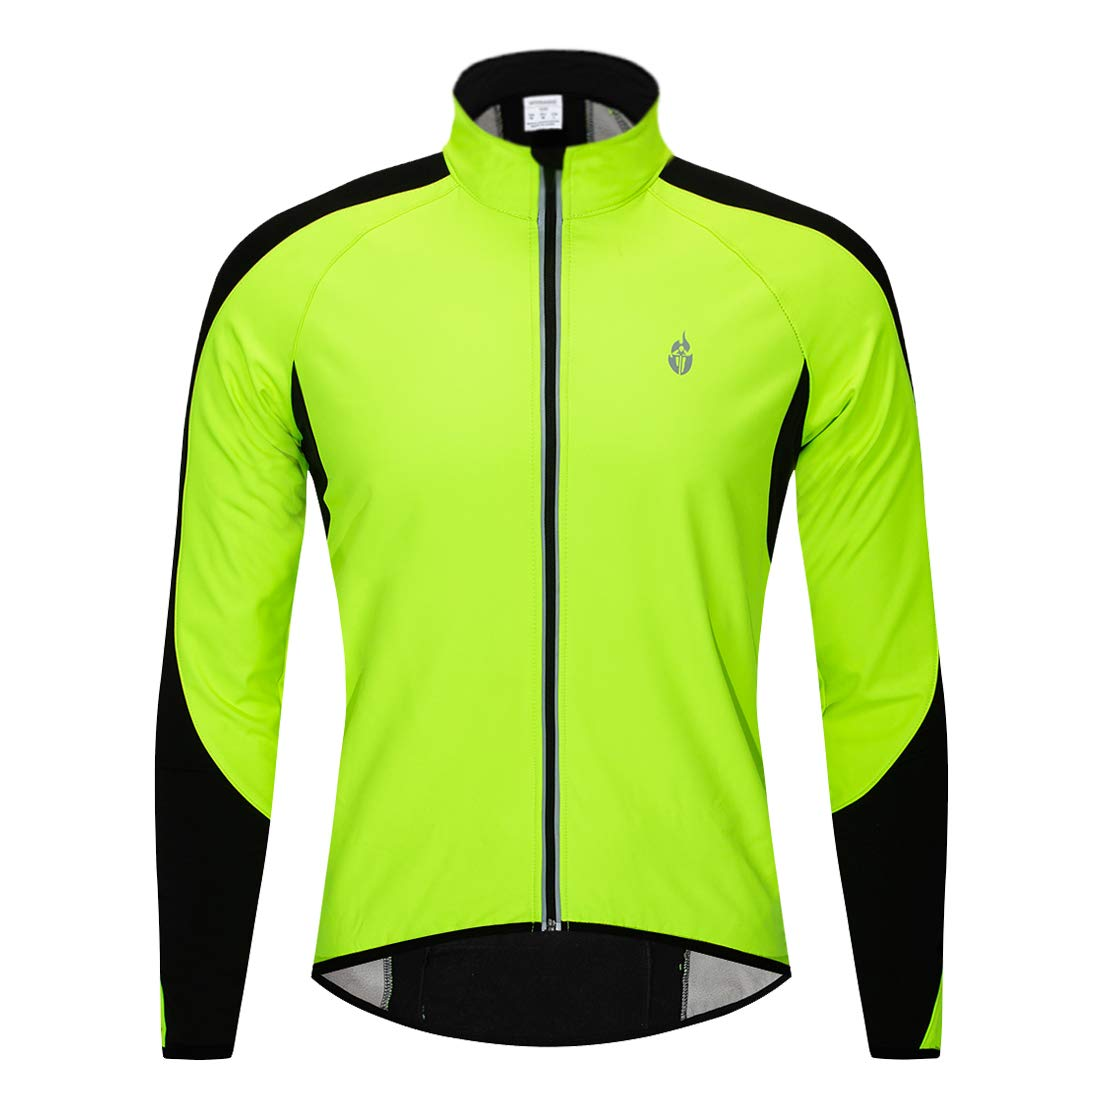 4594098f6 Amazon.com  Wolfbike Fleece Thermal Cycling Jacket Jersey Long Sleeve  Windproof UV-Protect Coat Green  Sports   Outdoors